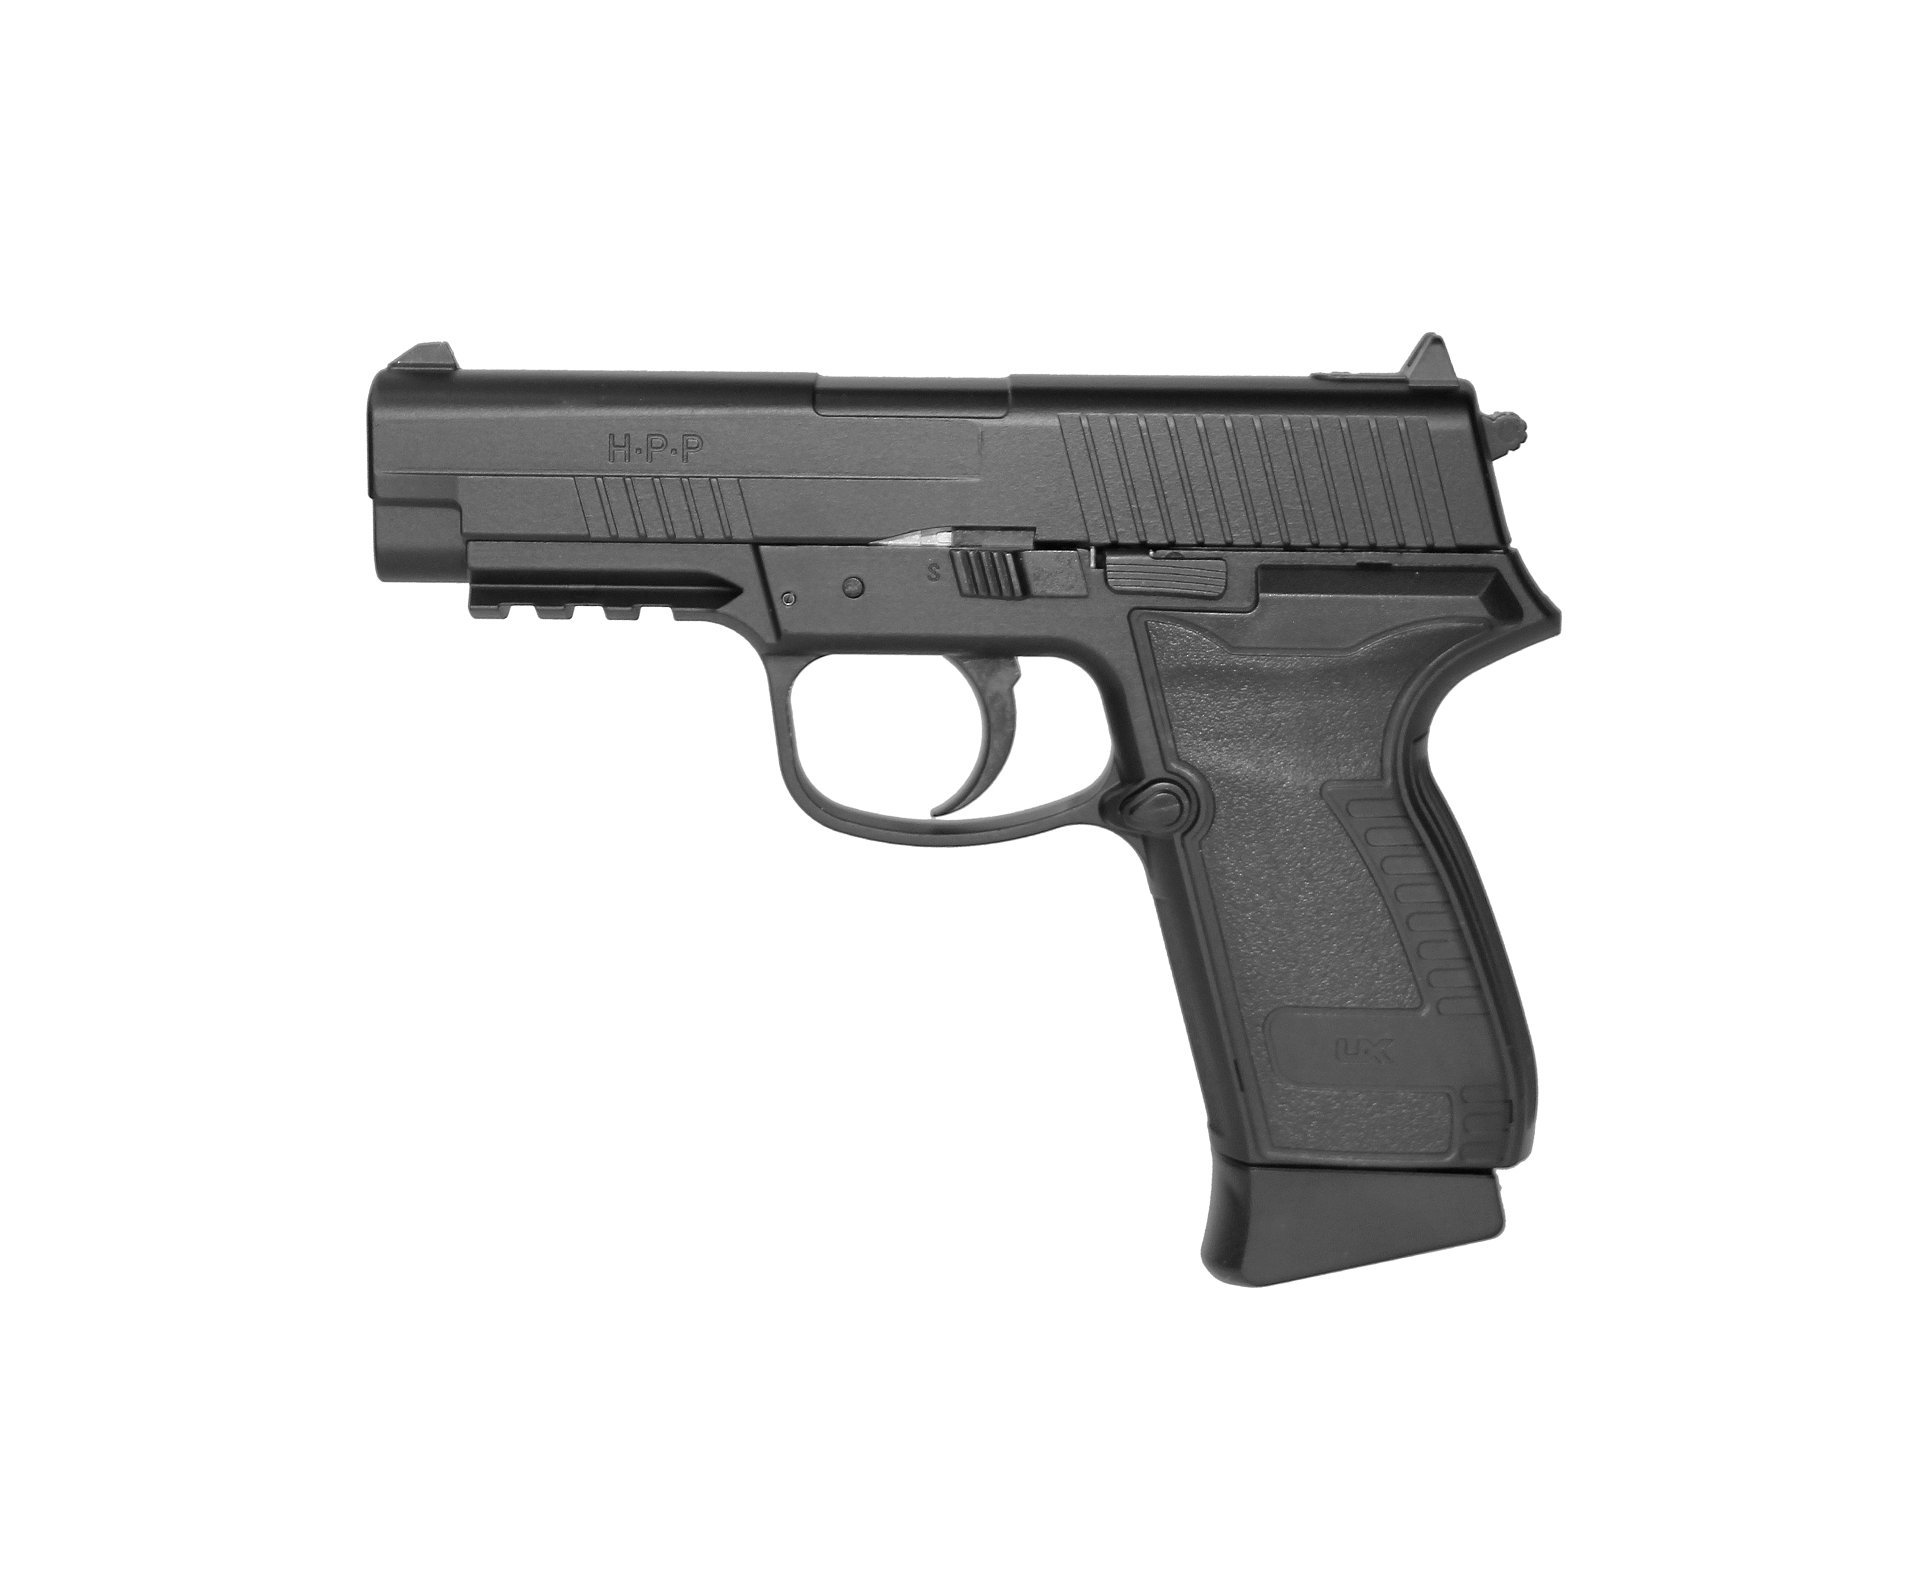 Pistola De Pressão Co2 Hpp Blowback Full Metal 4,5mm Umarex